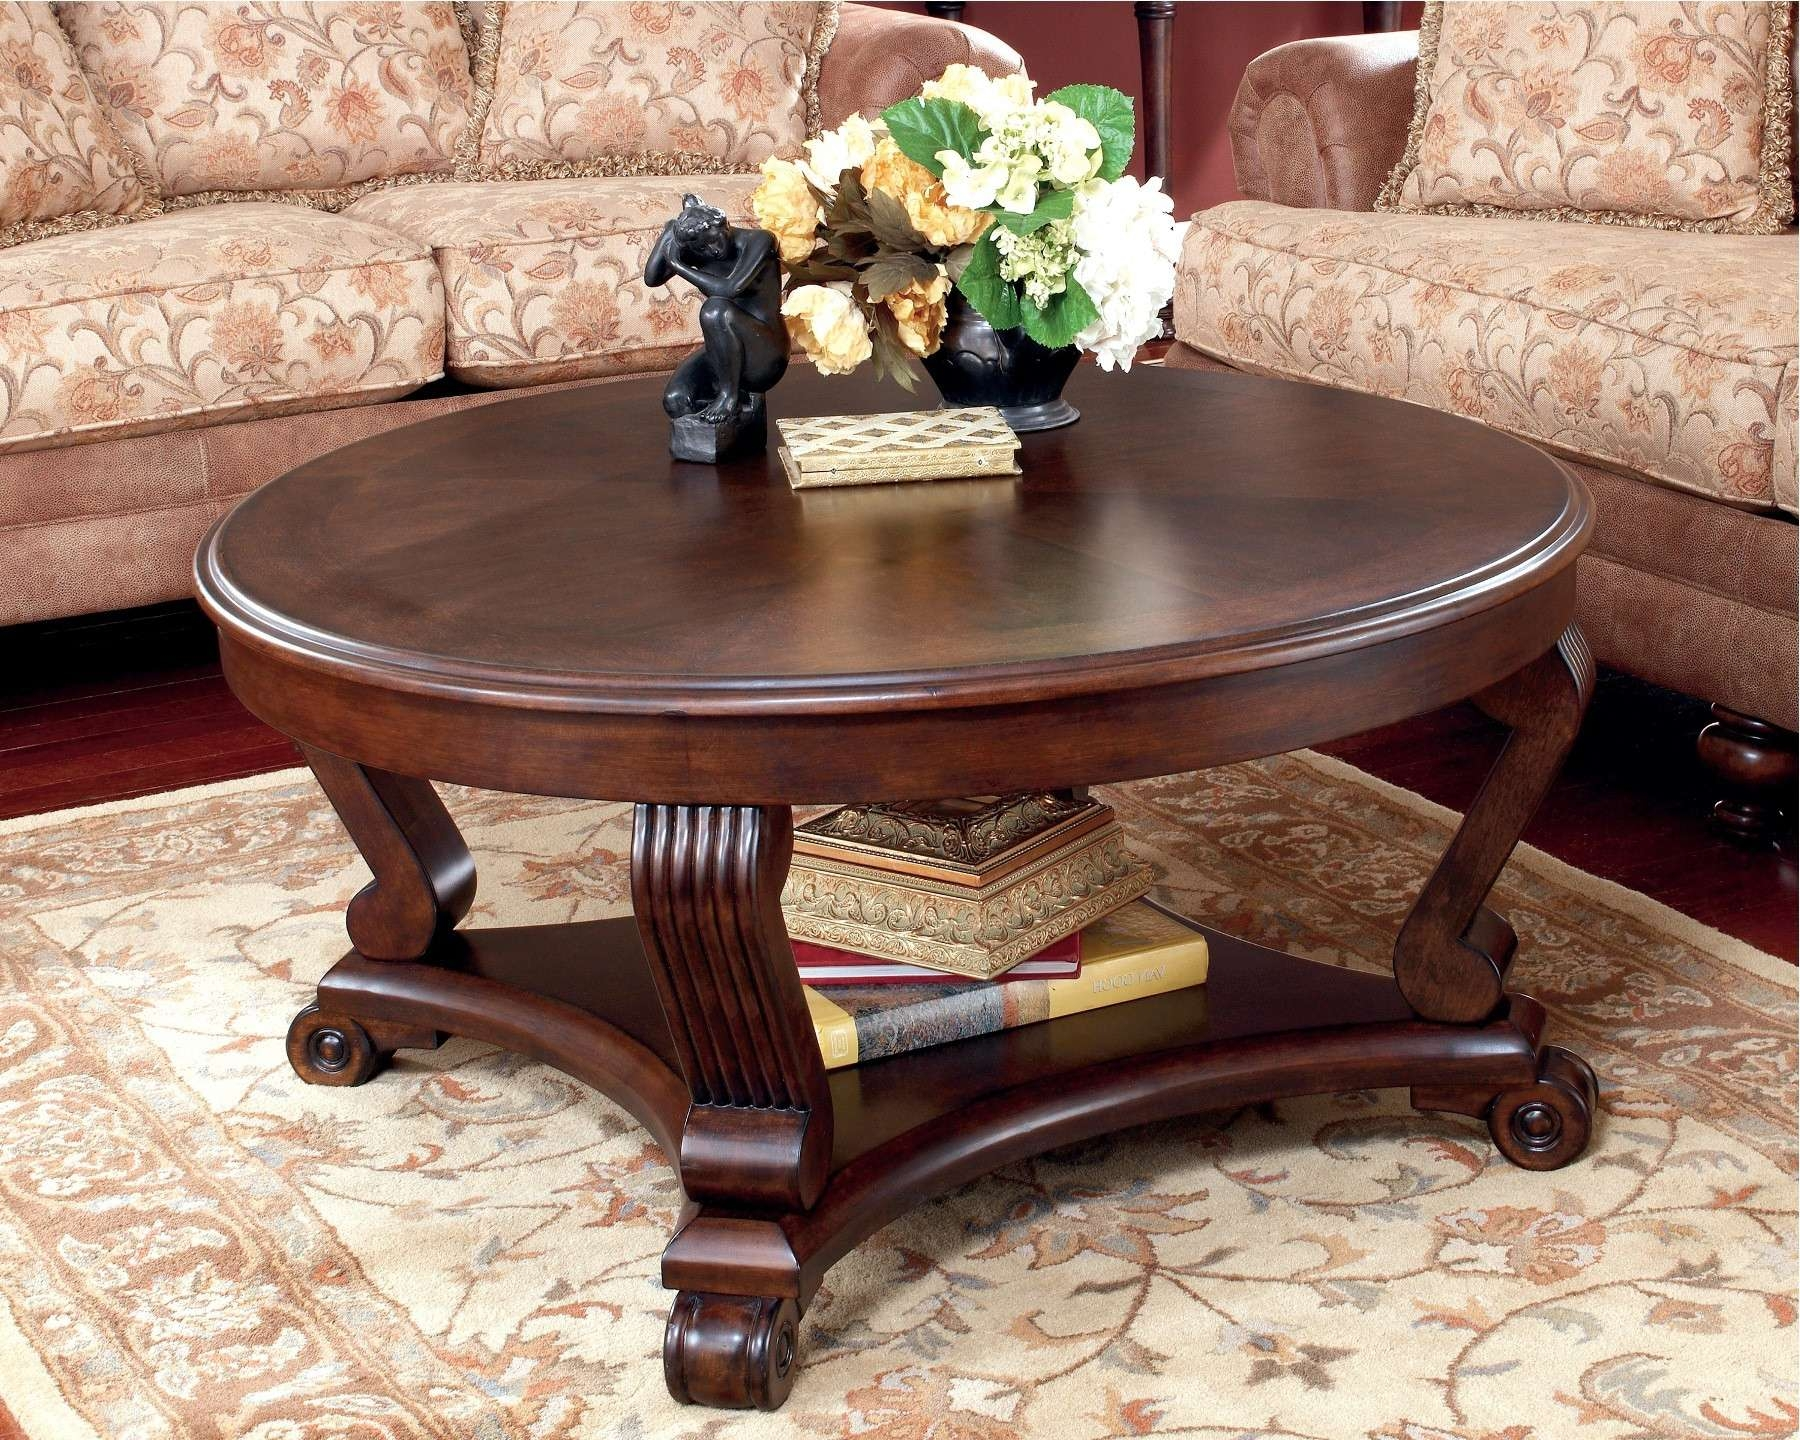 Most Popular Cherry Wood Coffee Table Sets Pertaining To Coffee Tables : Funky Coffee Tables Glass Table Sets Large Round (View 5 of 20)